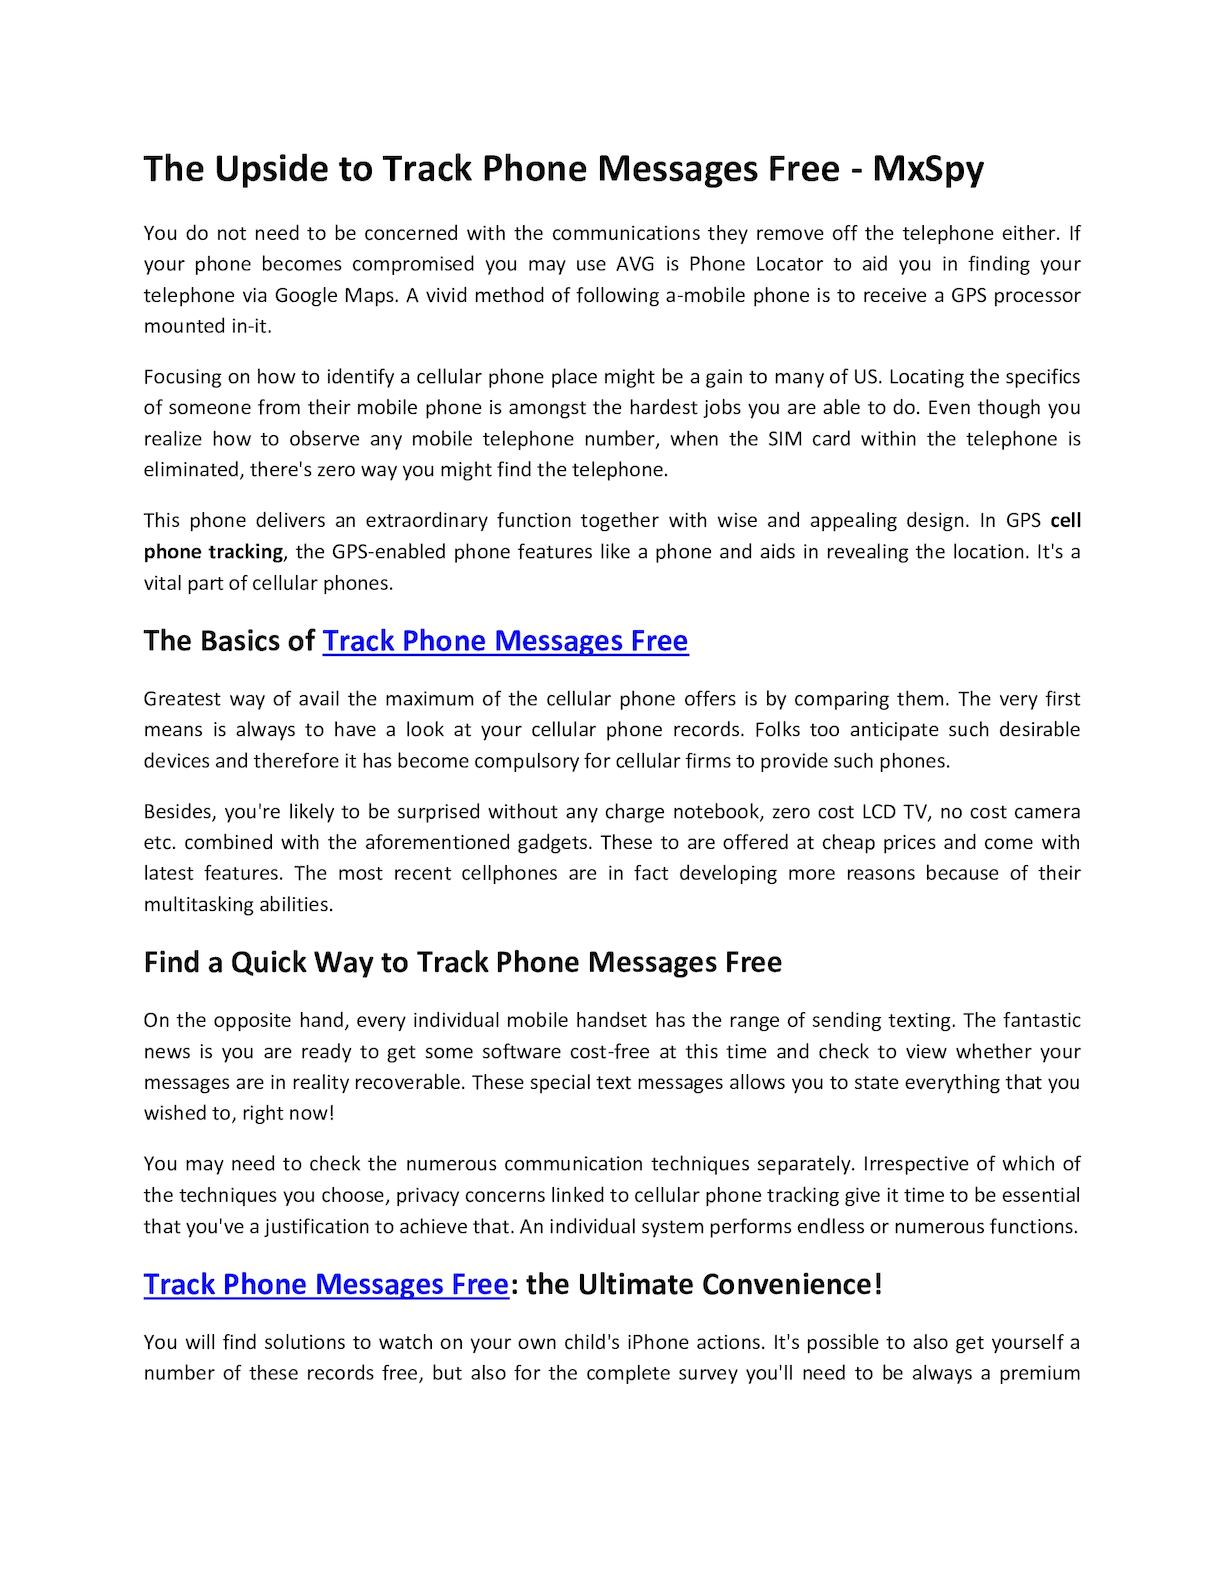 Calaméo - The Upside To Track Phone Messages Free Mx Spy